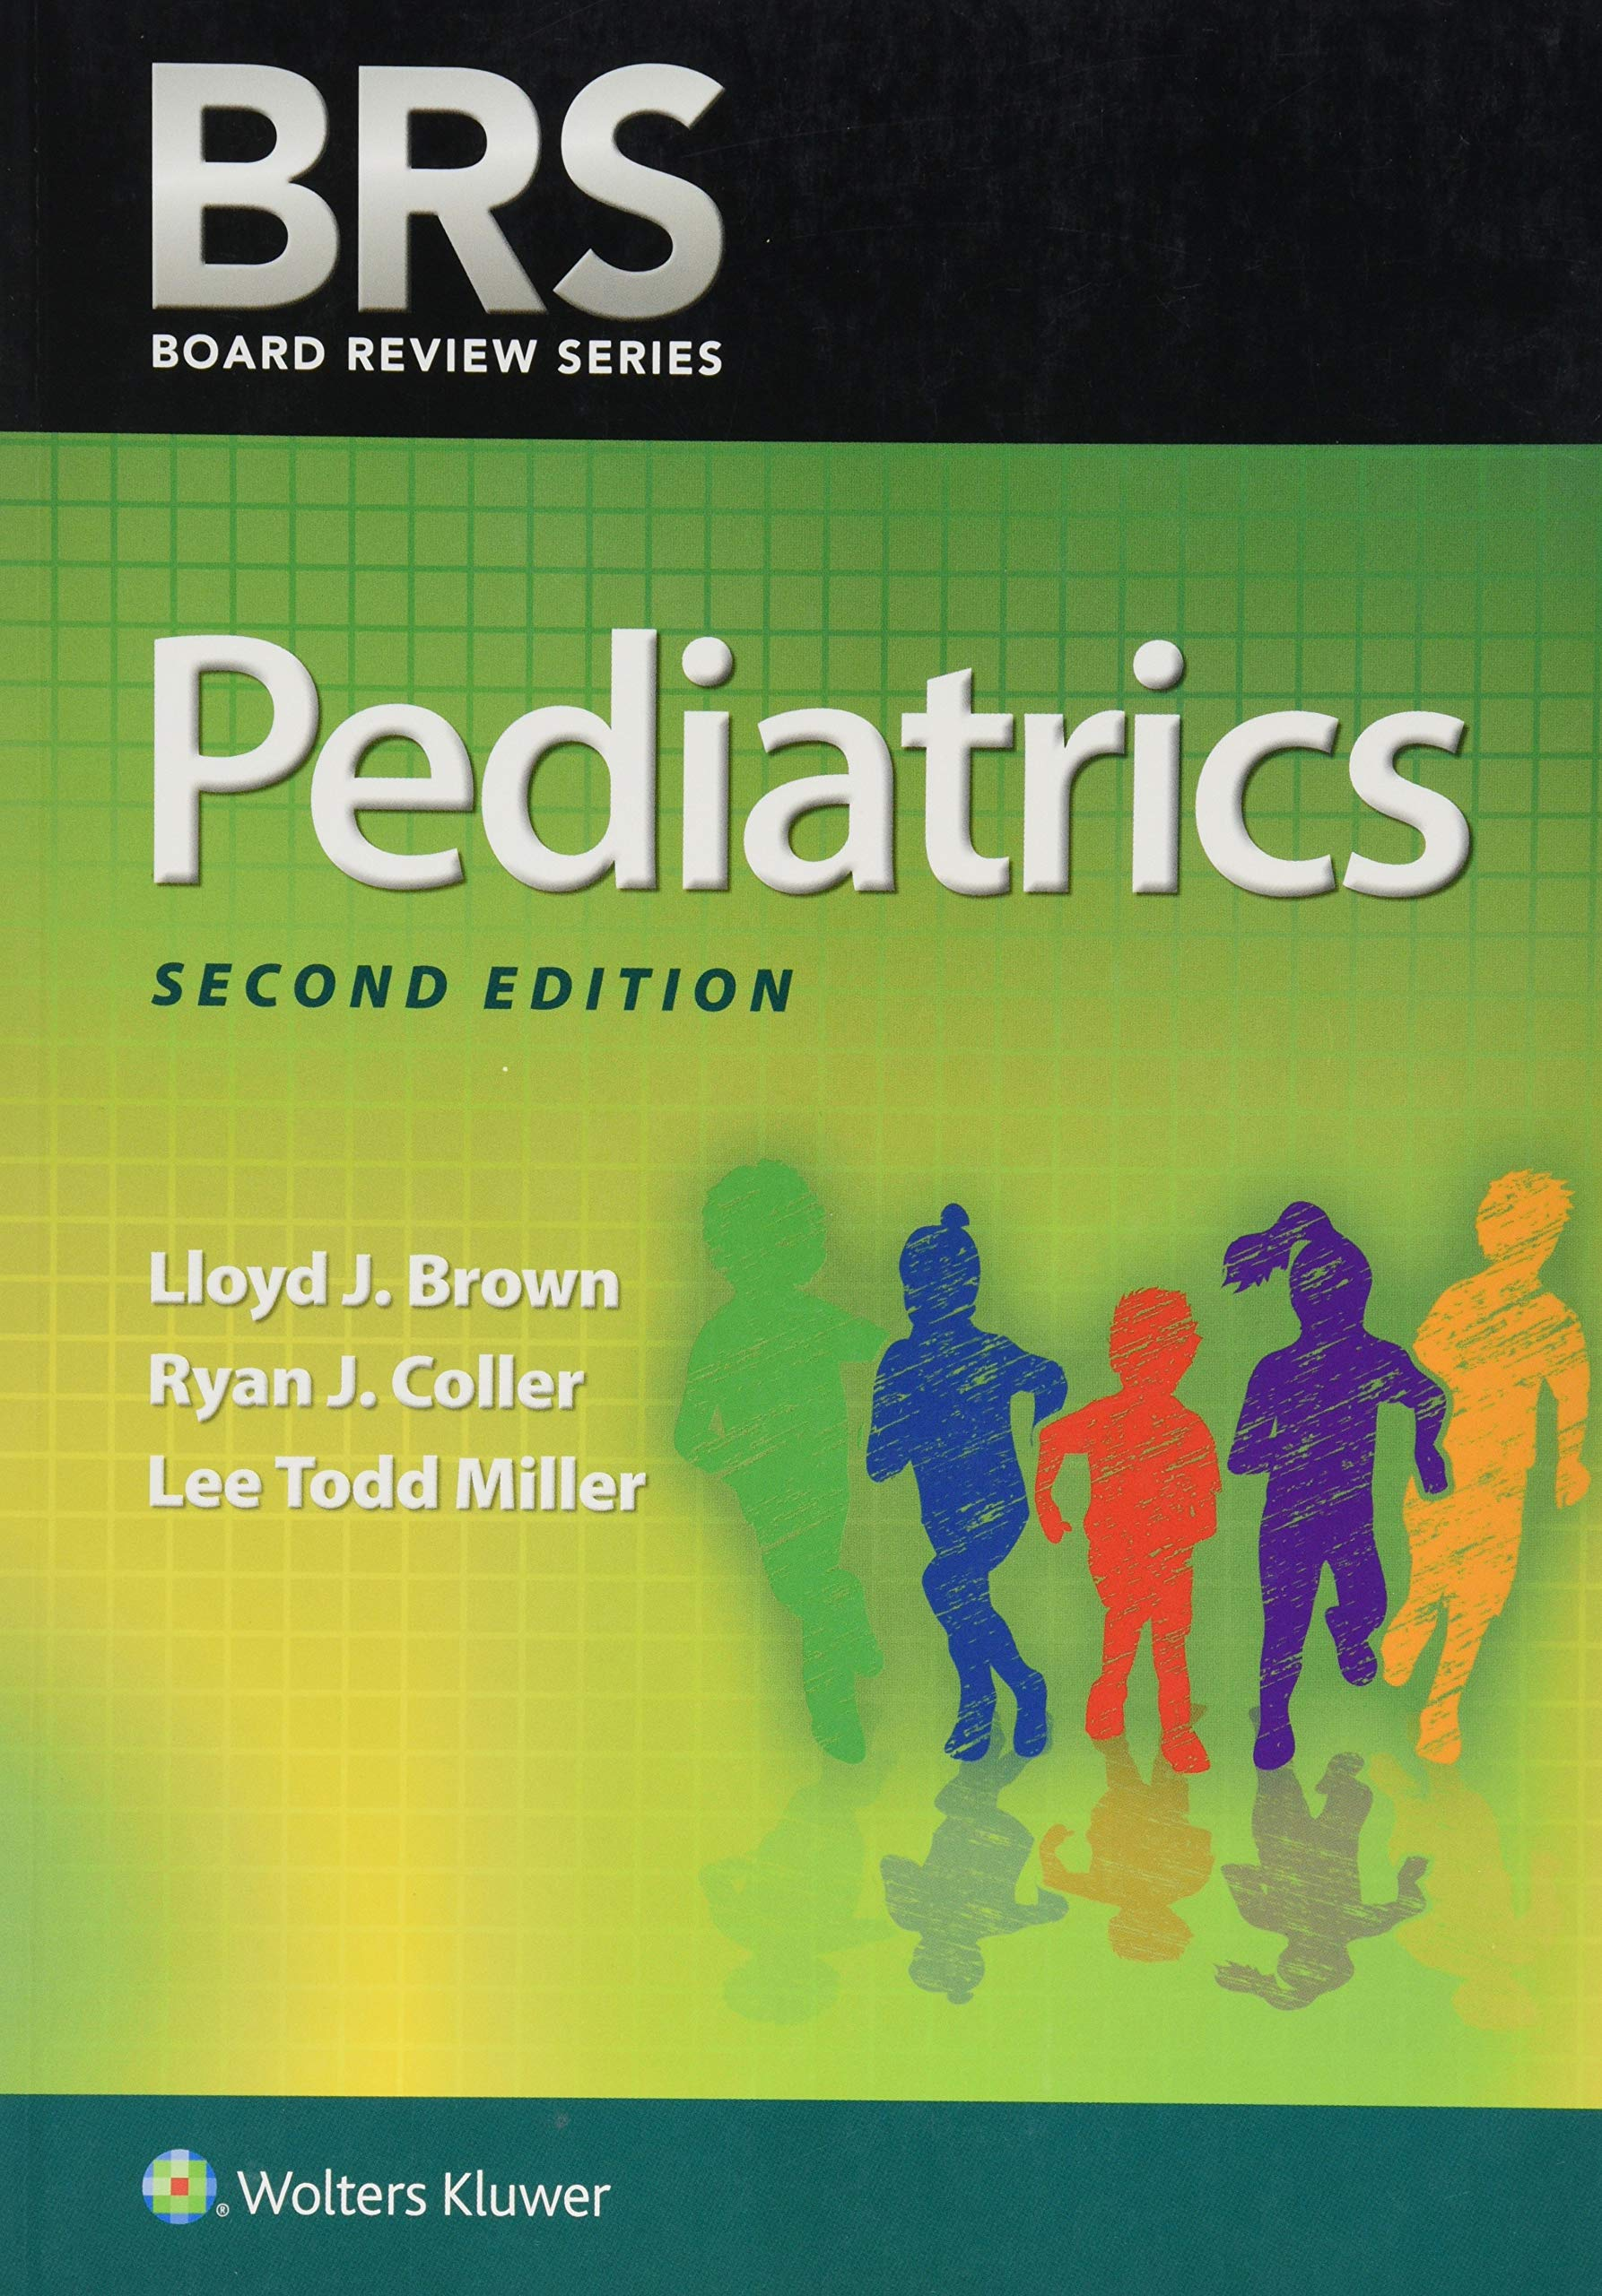 BRS Pediatrics (Board Review Series) by LWW